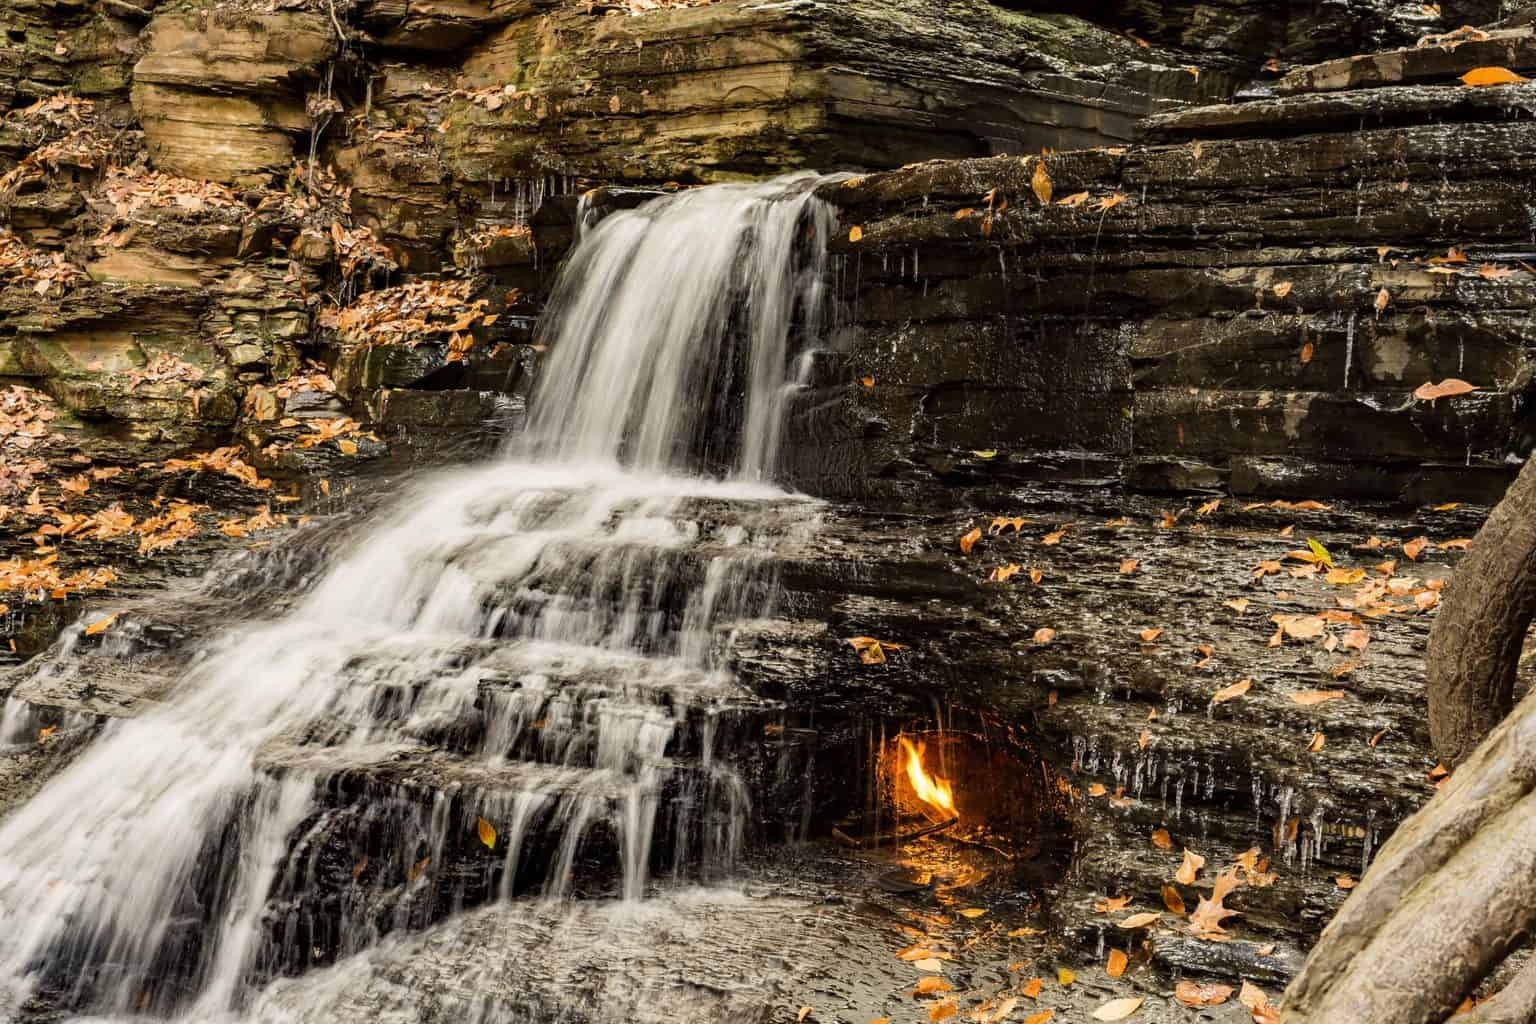 A view of the Eternal Flame Falls near Orchard Park.